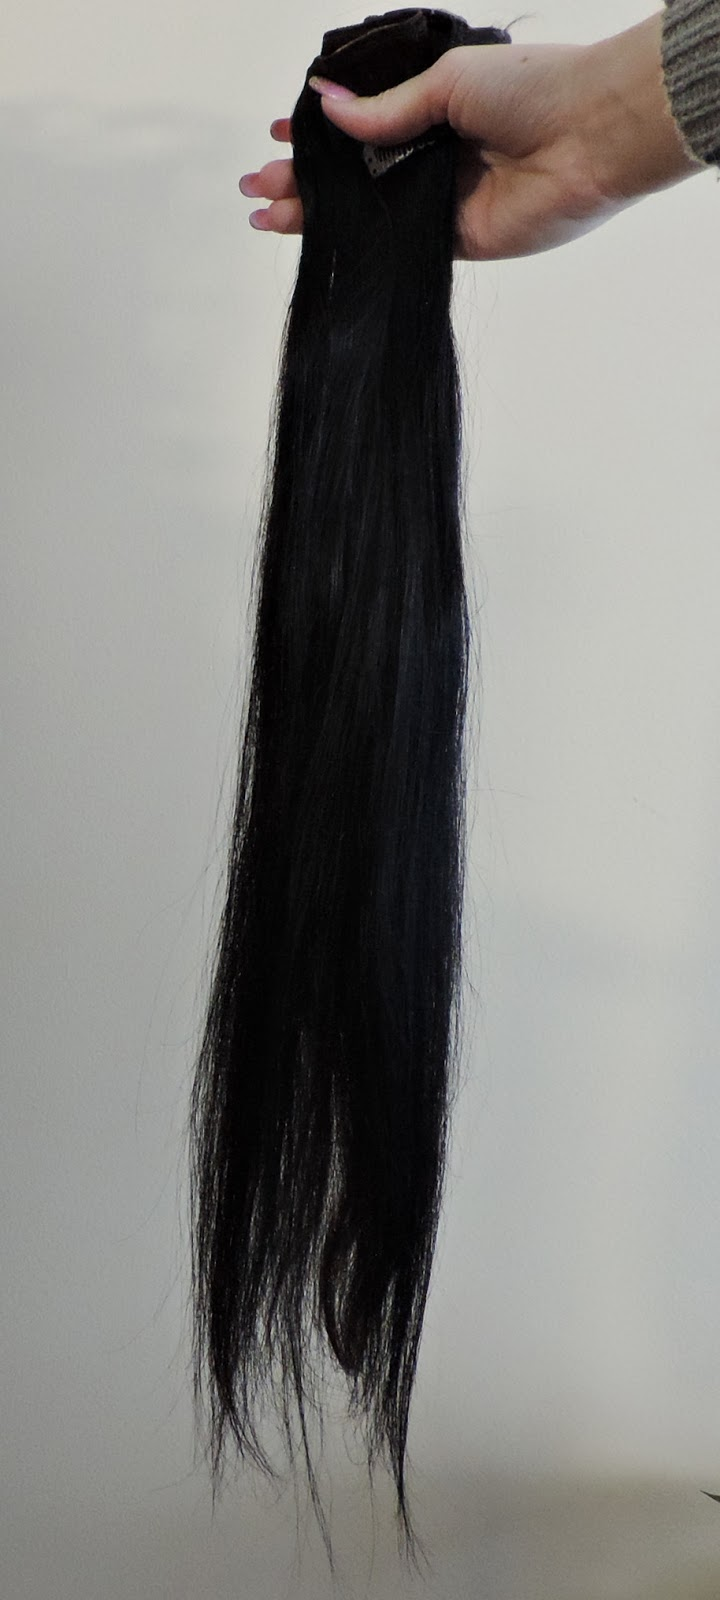 set vs the one weft of bombay hair to show the thickness of this hair